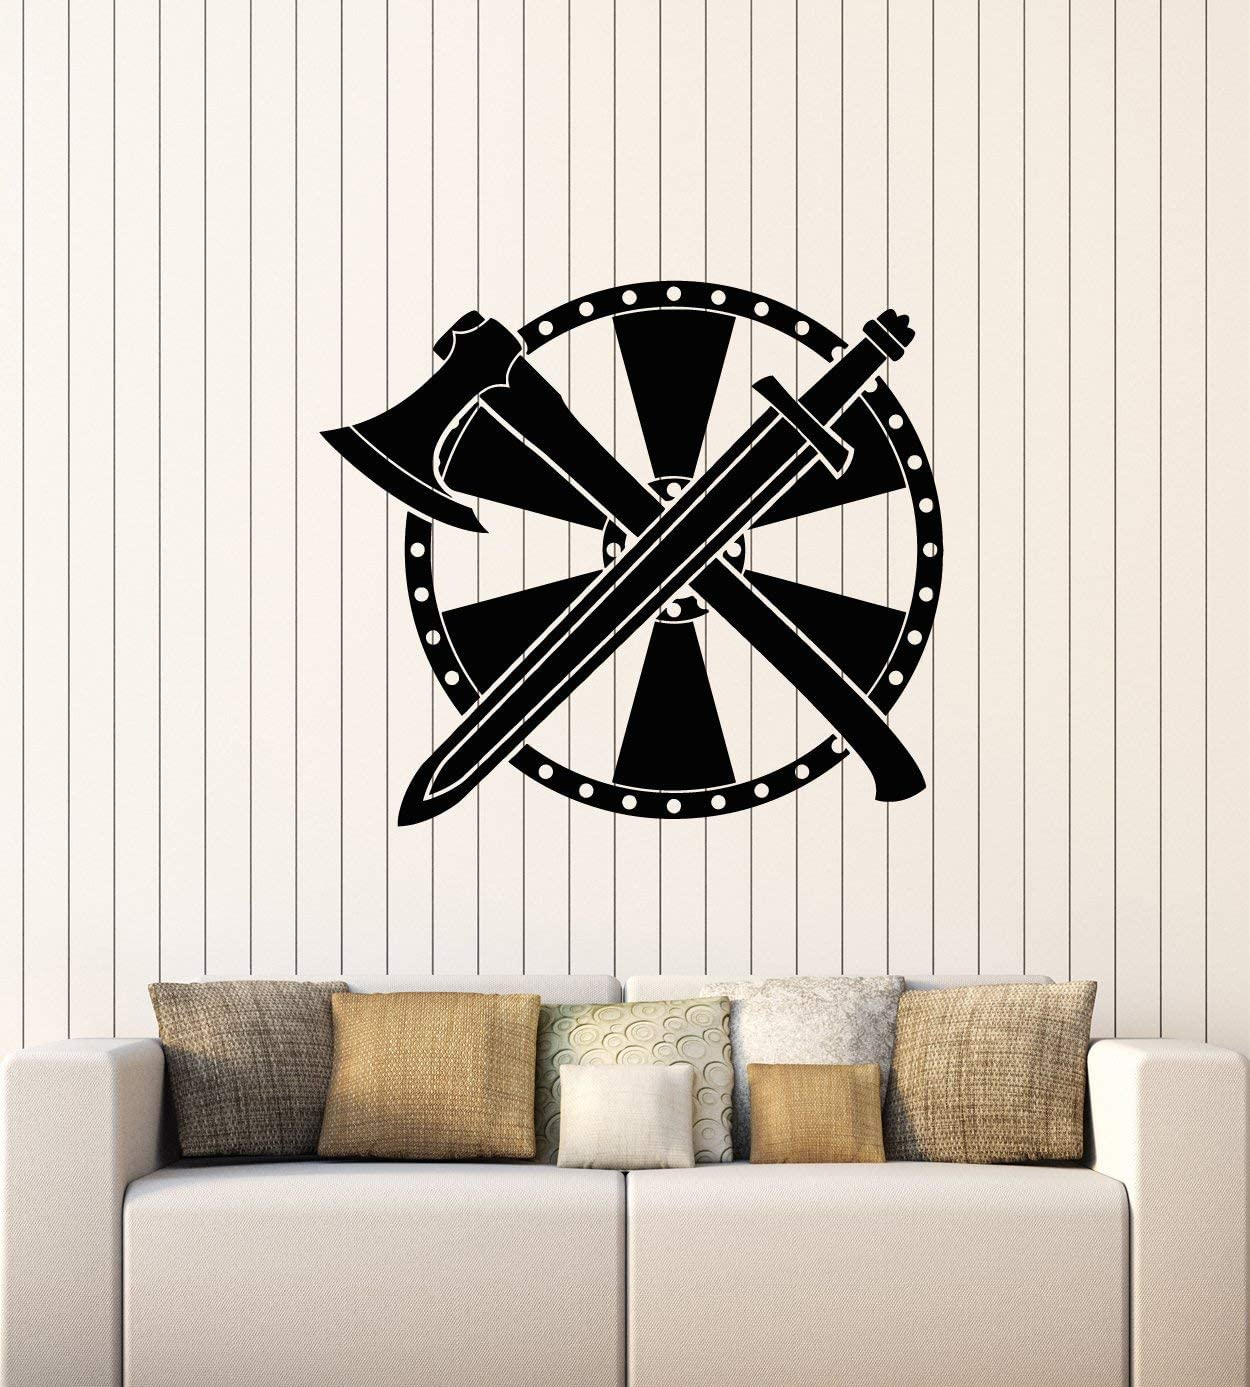 Vinyl Wall Decal Man Cave Decor Warrior Shield Axe Sword Weapons Stickers Mural Large Decor (g1383) Black